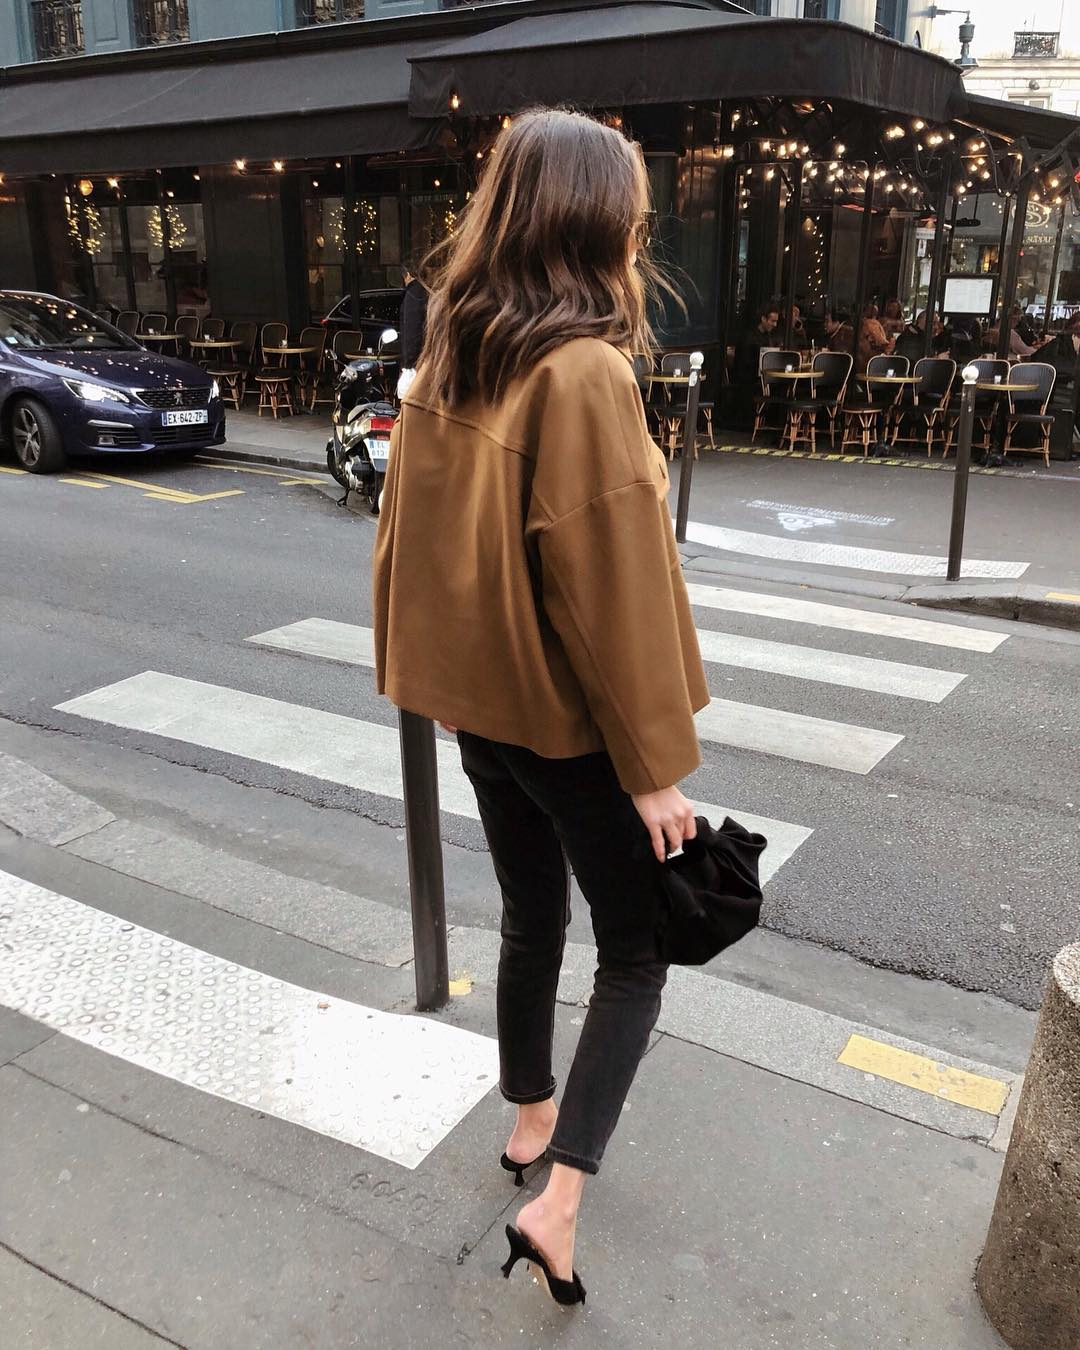 Stylish Instagram outfit idea for fall — camel jacket, black skinny jeans, and kitten heel mules